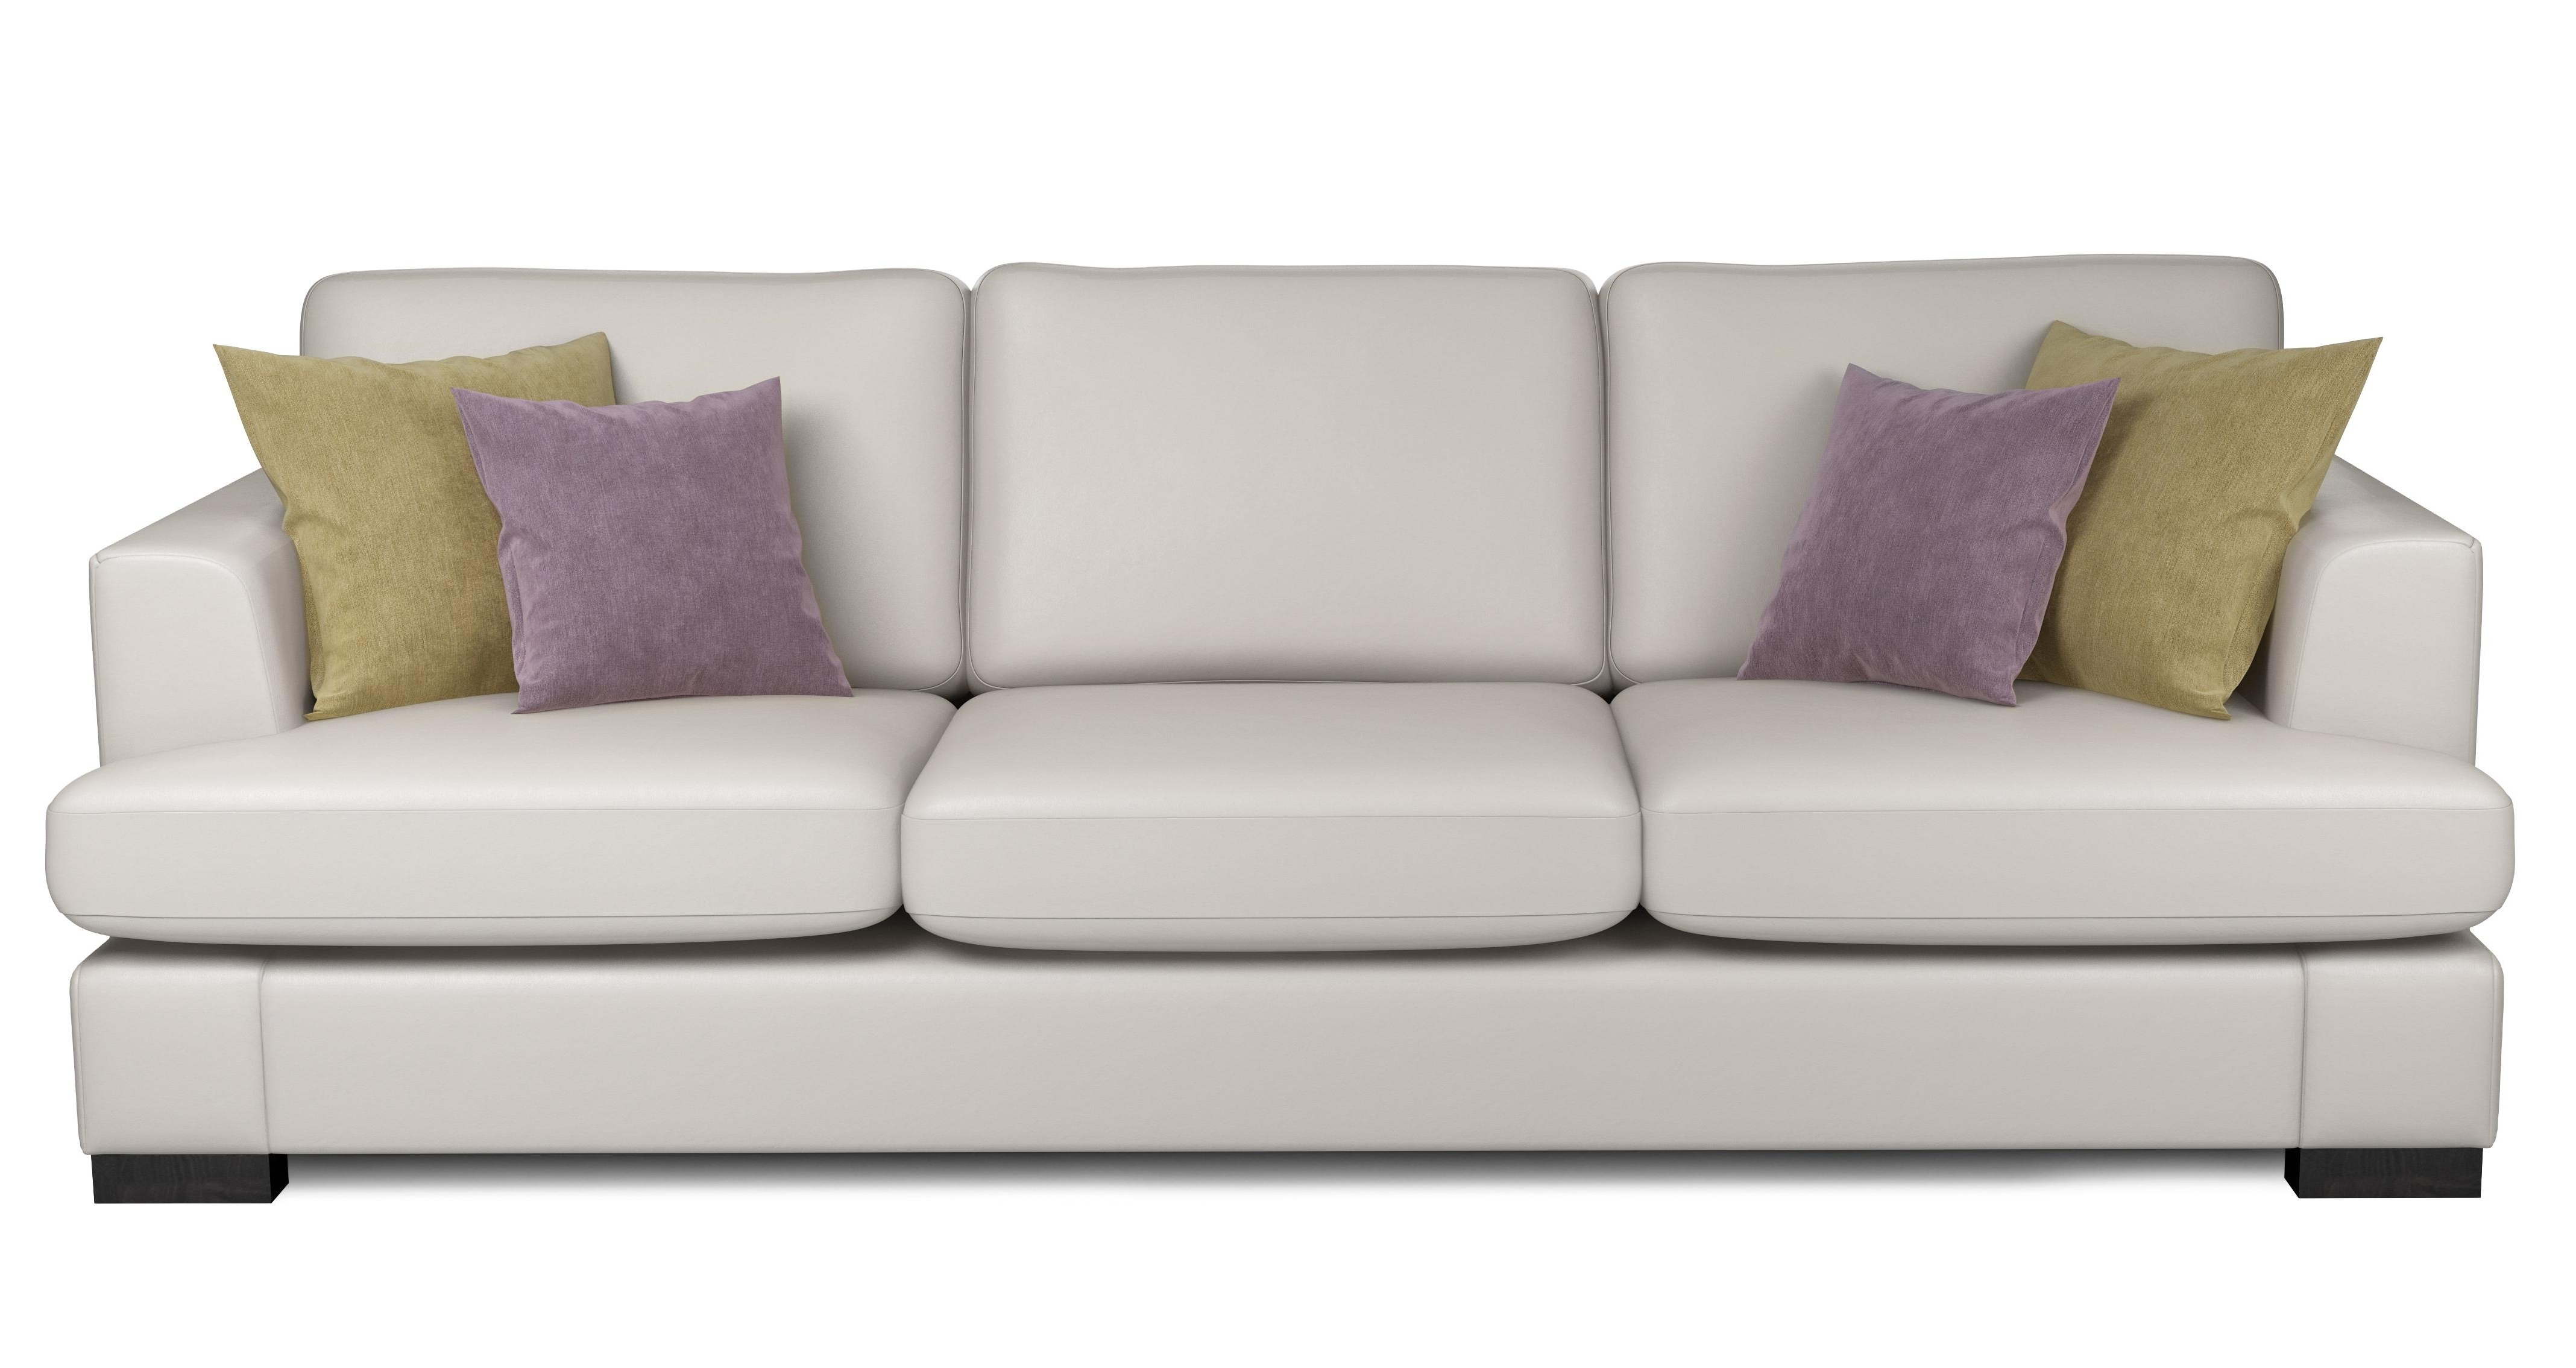 4 Seat Leather Sofas In Well Liked 4 Seater Leather Sofa – Home And Textiles (View 6 of 20)